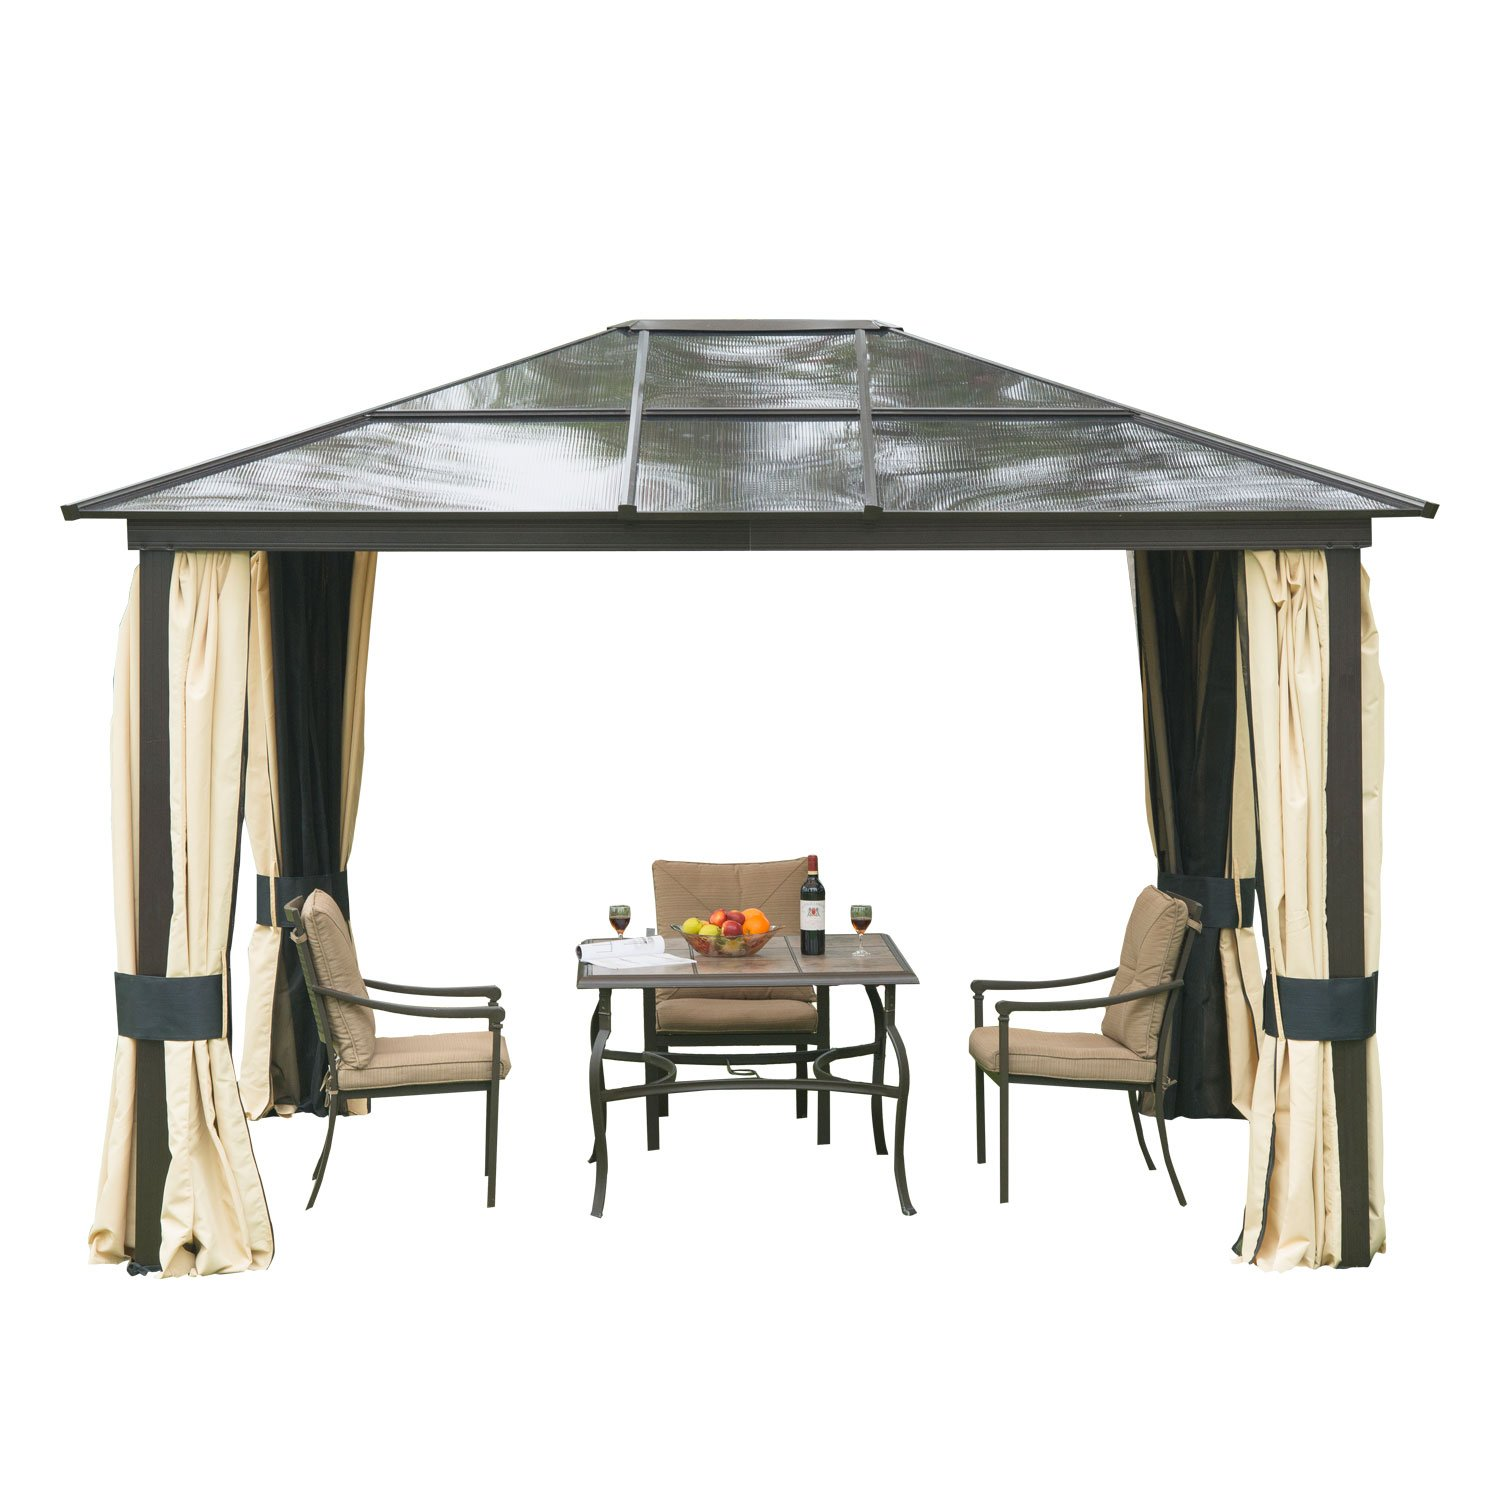 Amazon.com : Outsunny 12u0027 X 10u0027 Outdoor Patio Canopy Party Gazebo W/ Mesh  And Curtains   Beige : Patio, Lawn U0026 Garden